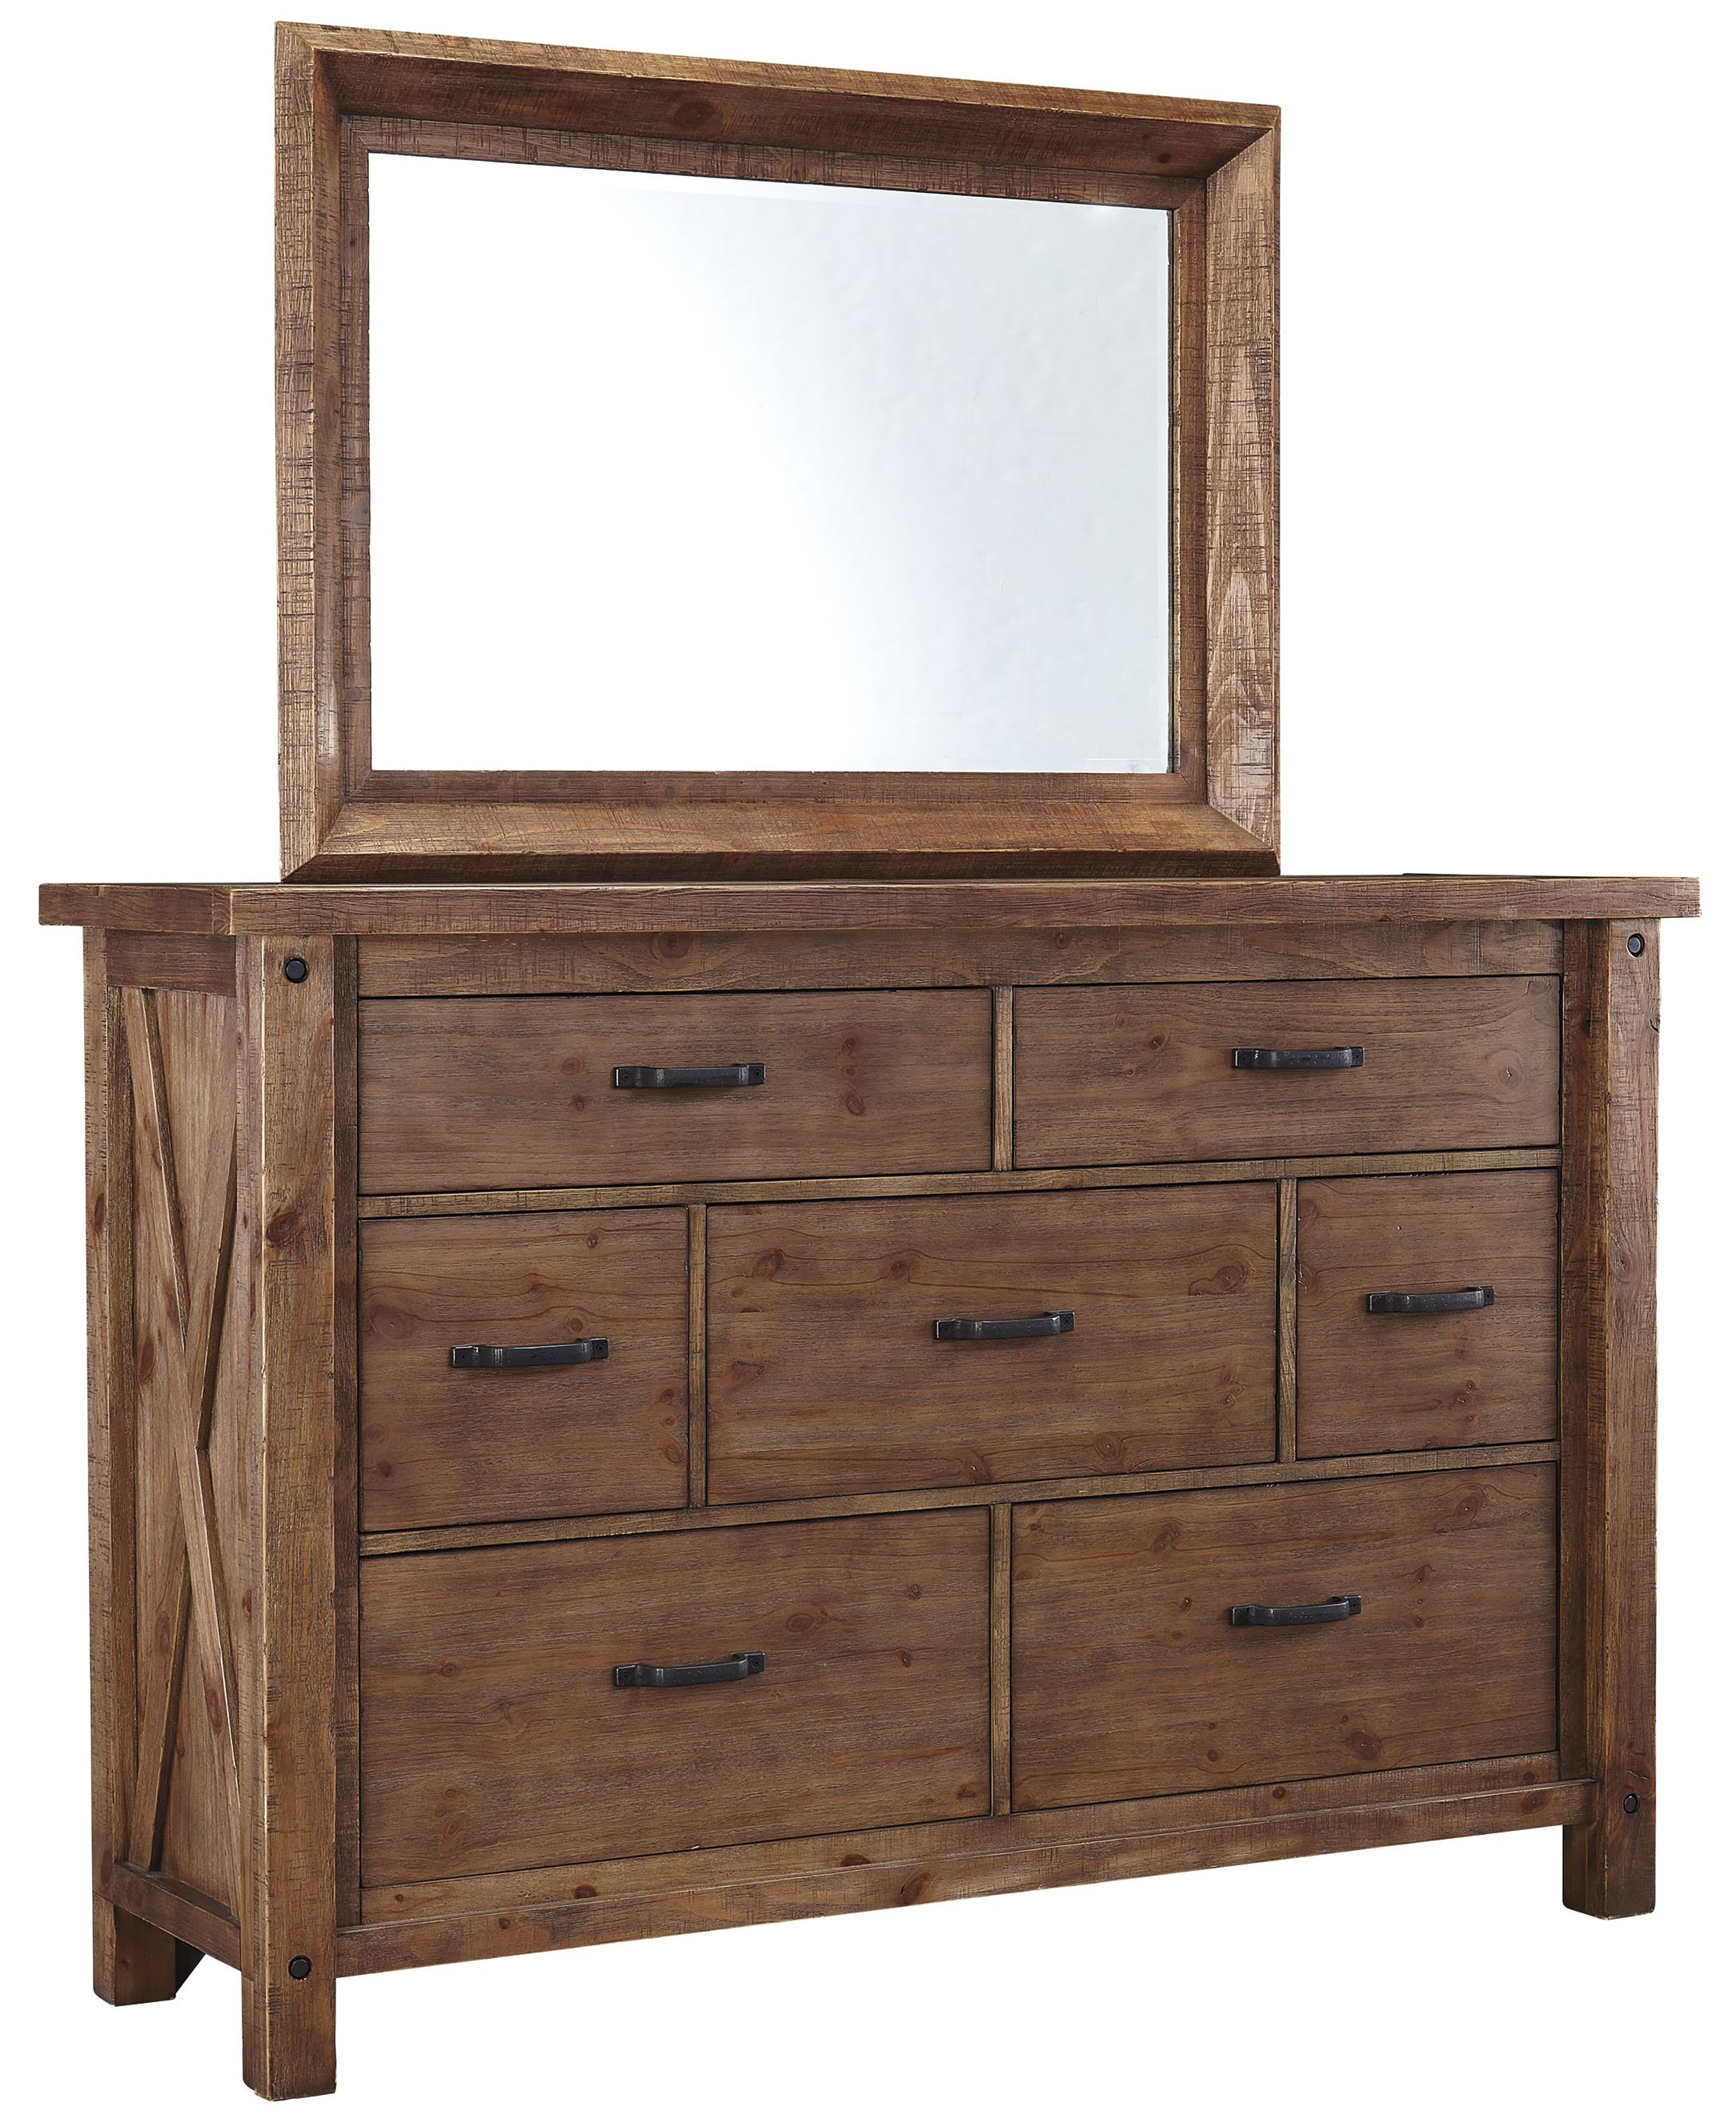 Signature Design by Ashley Tamilo 7 Drawer Dresser and Mirror - Item Number: B714-31+36